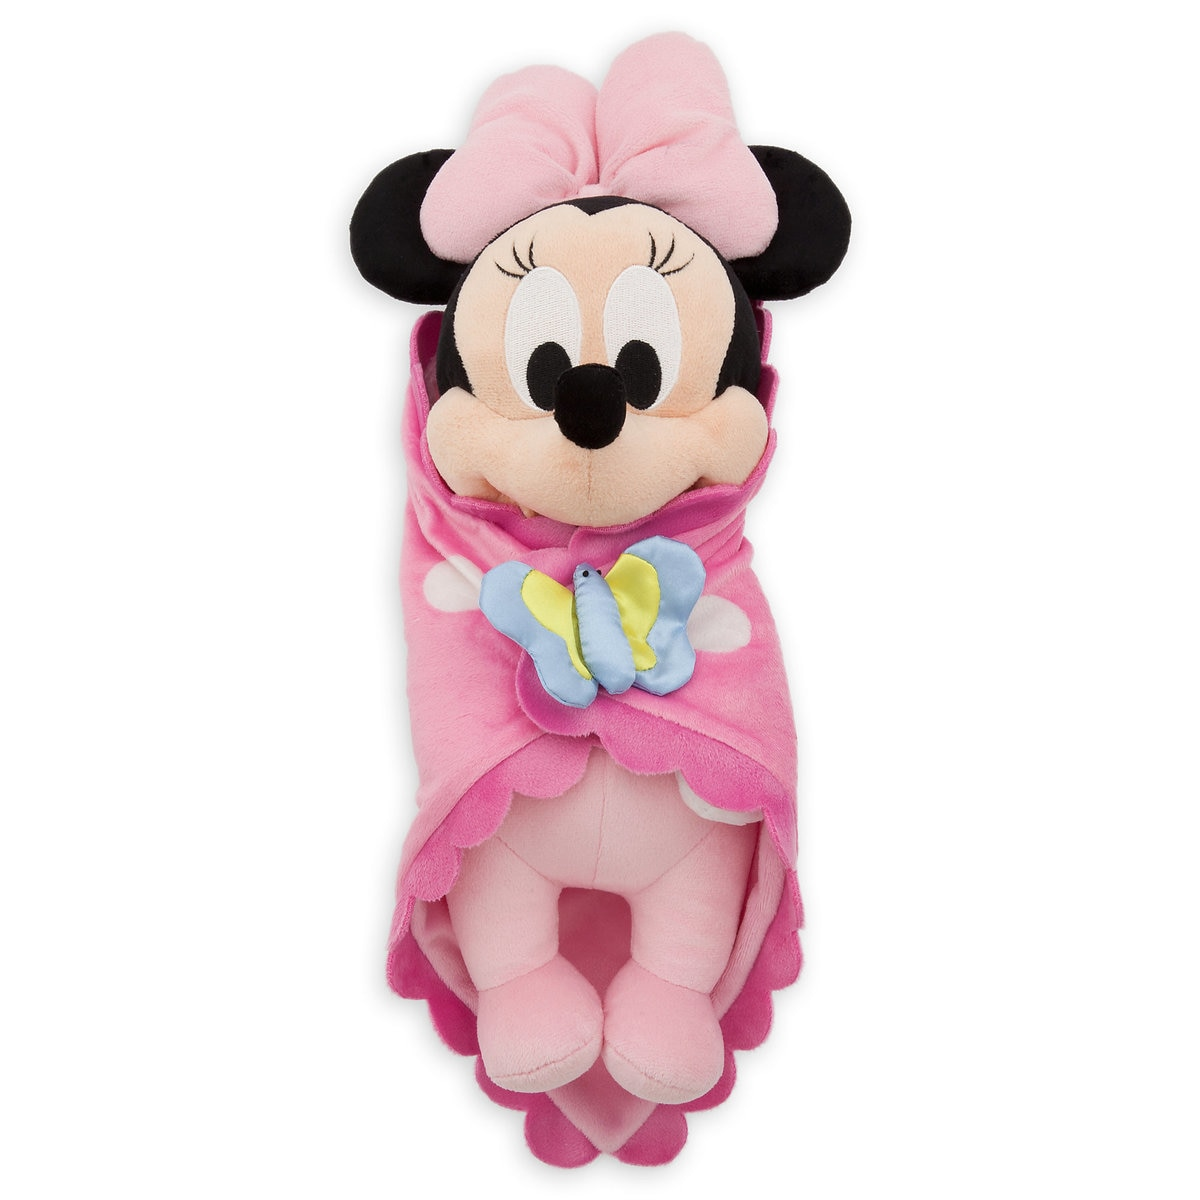 Disneys Babies Minnie Mouse Plush Doll and Blanket  Small  10